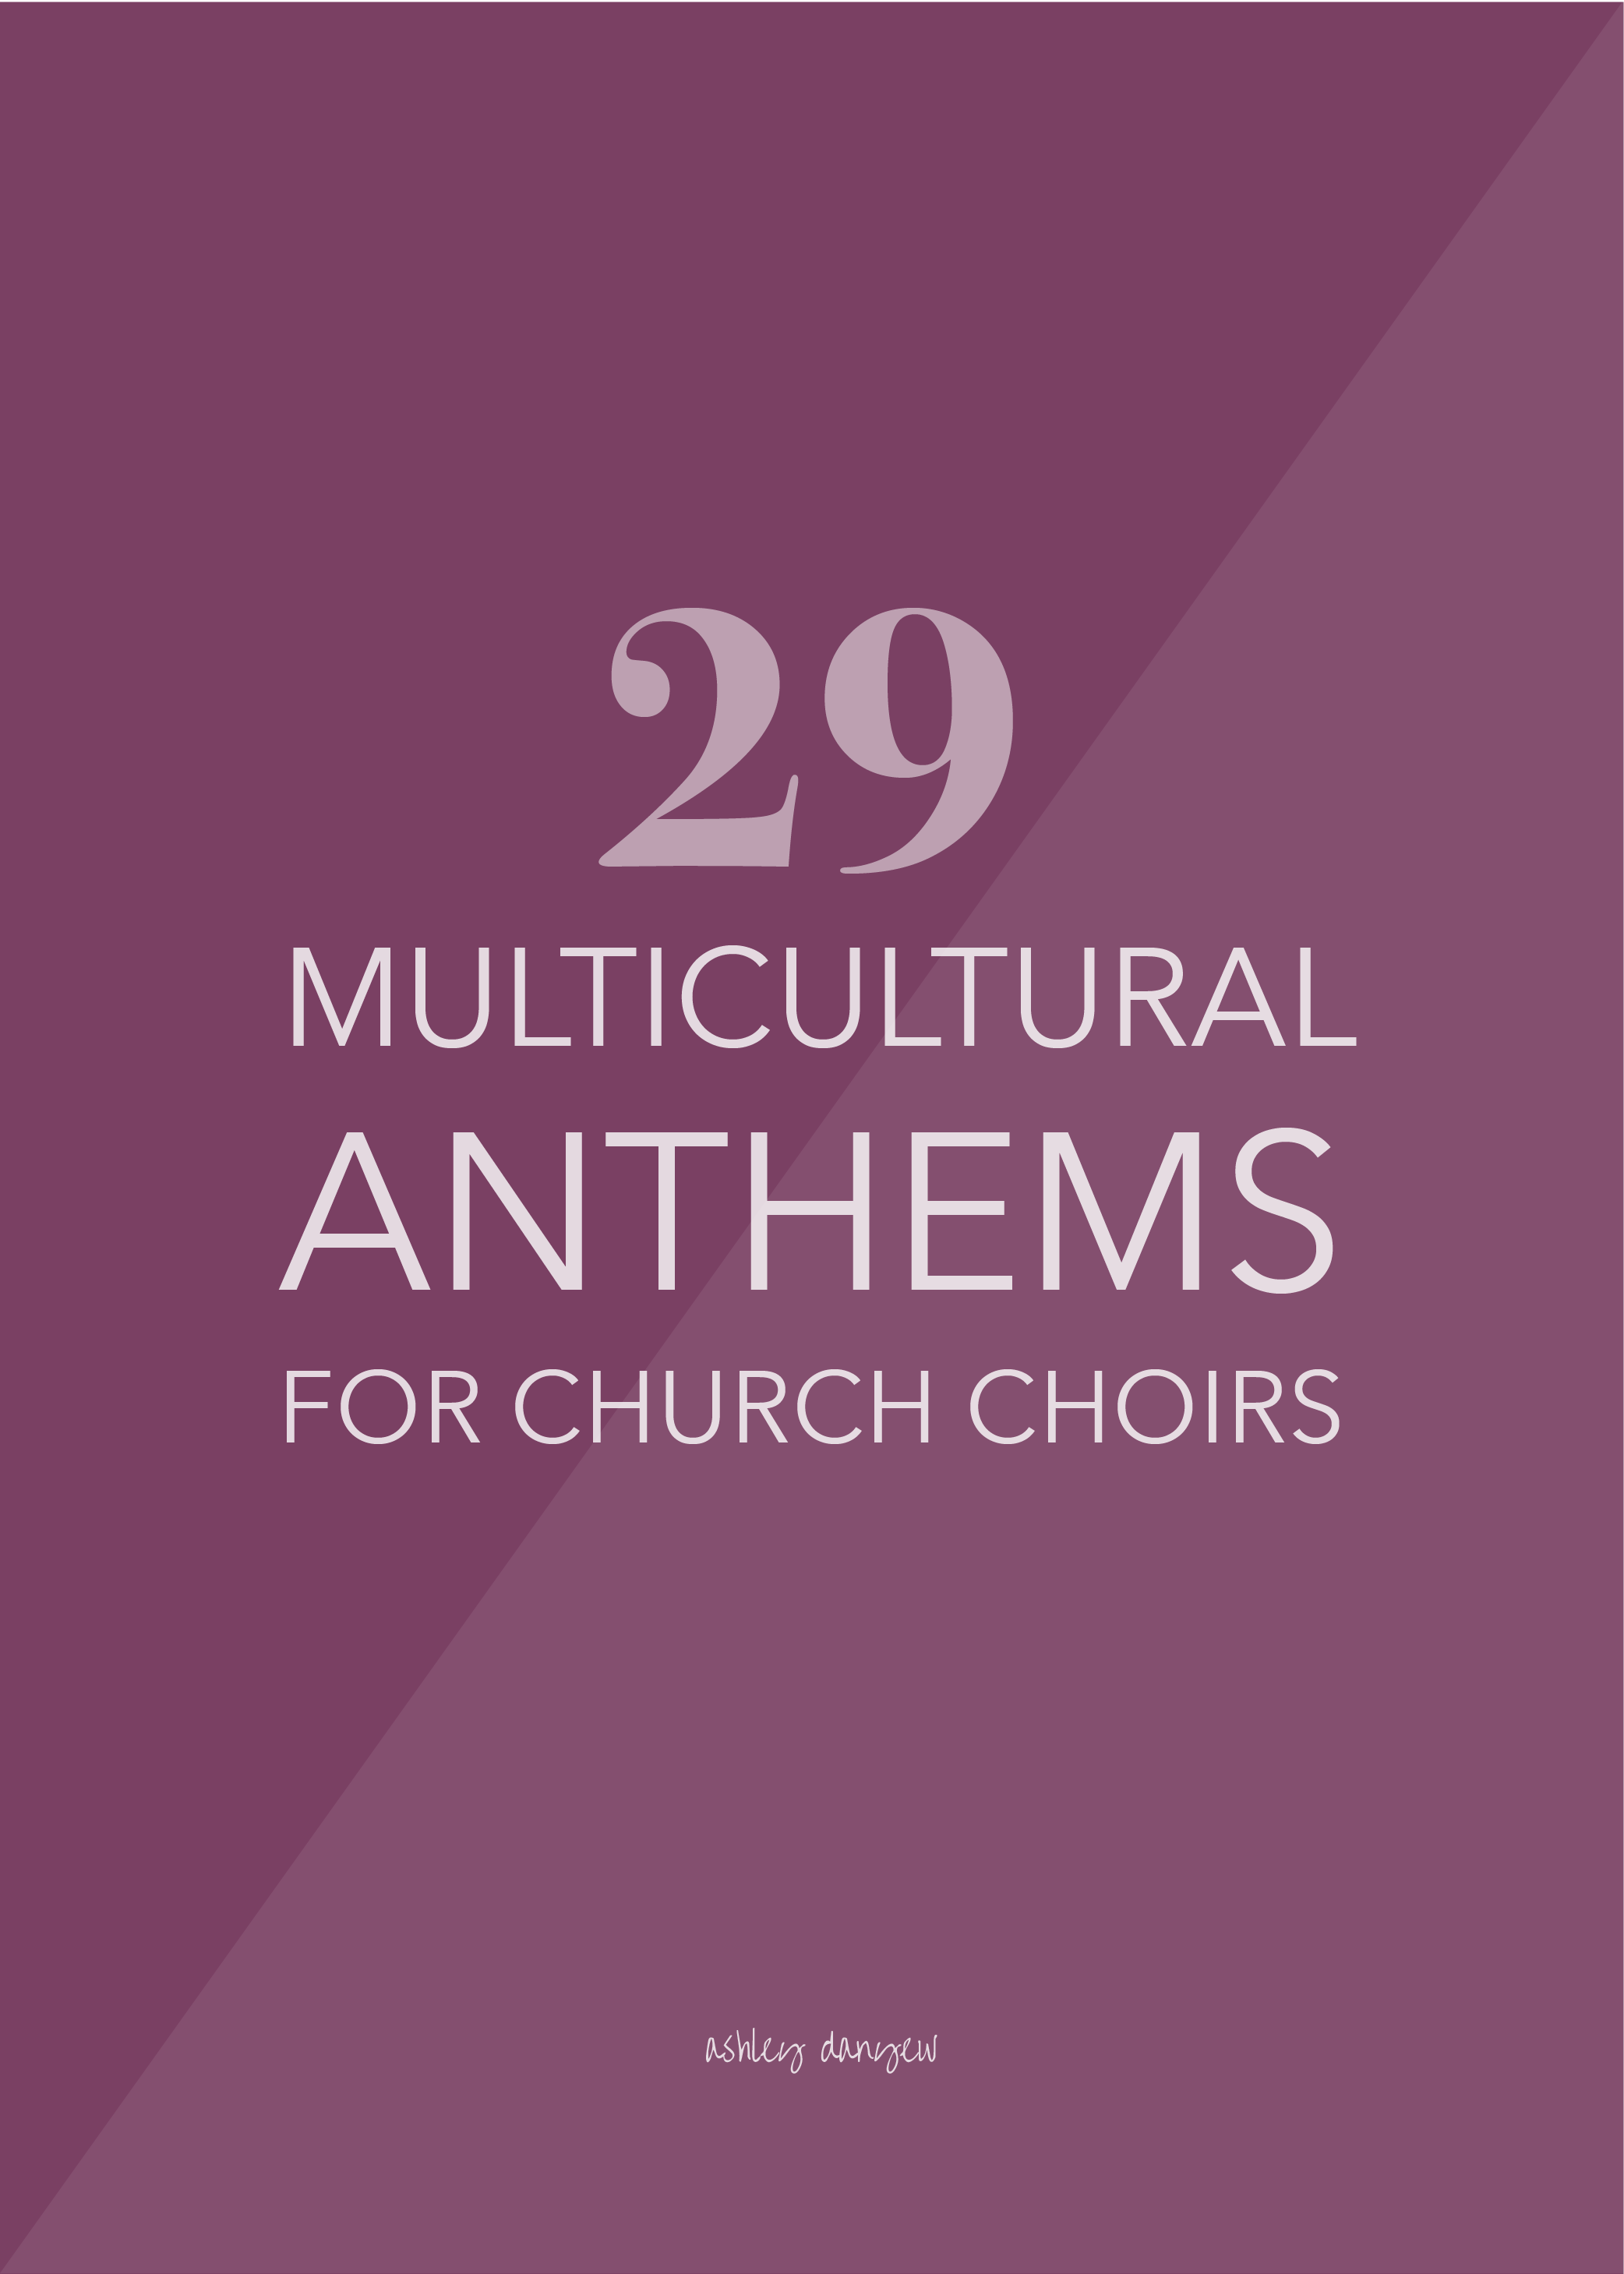 29 Multicultural Anthems for Church Choirs | Ashley Danyew